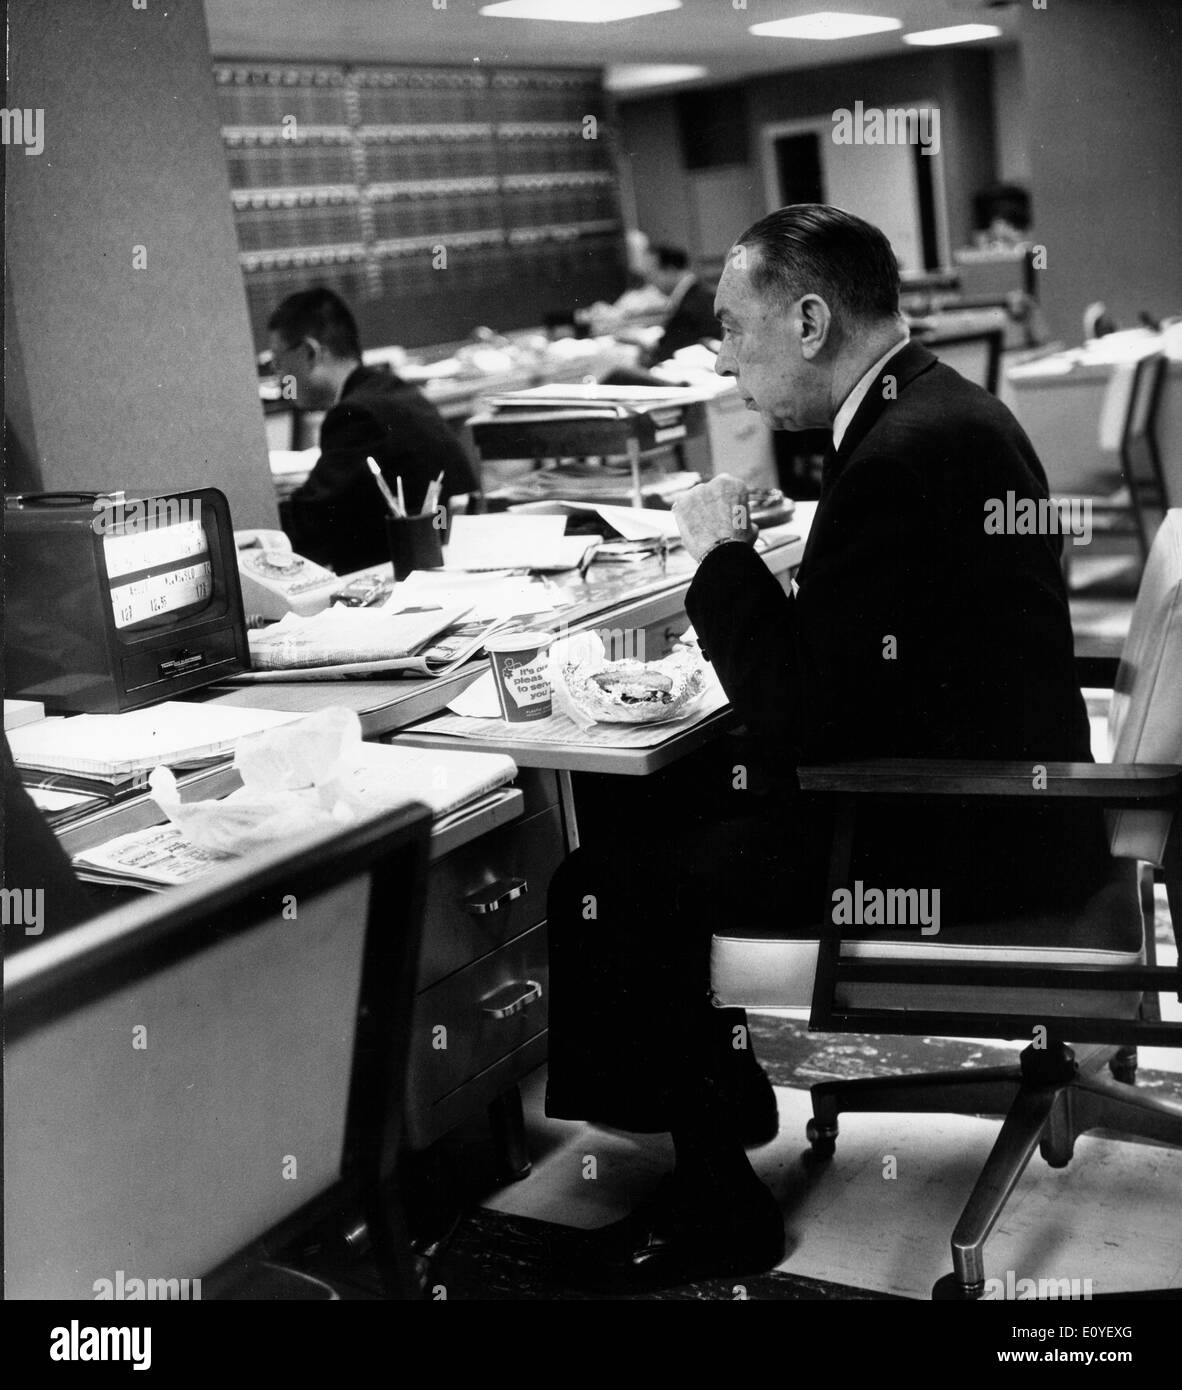 Jan. 01, 1970 - New York, New York, U.S. - File Photo: circa 1970s. A man eats lunch while working at Goodbody and Co., one of the largest investment firms in the U.S. - Stock Image